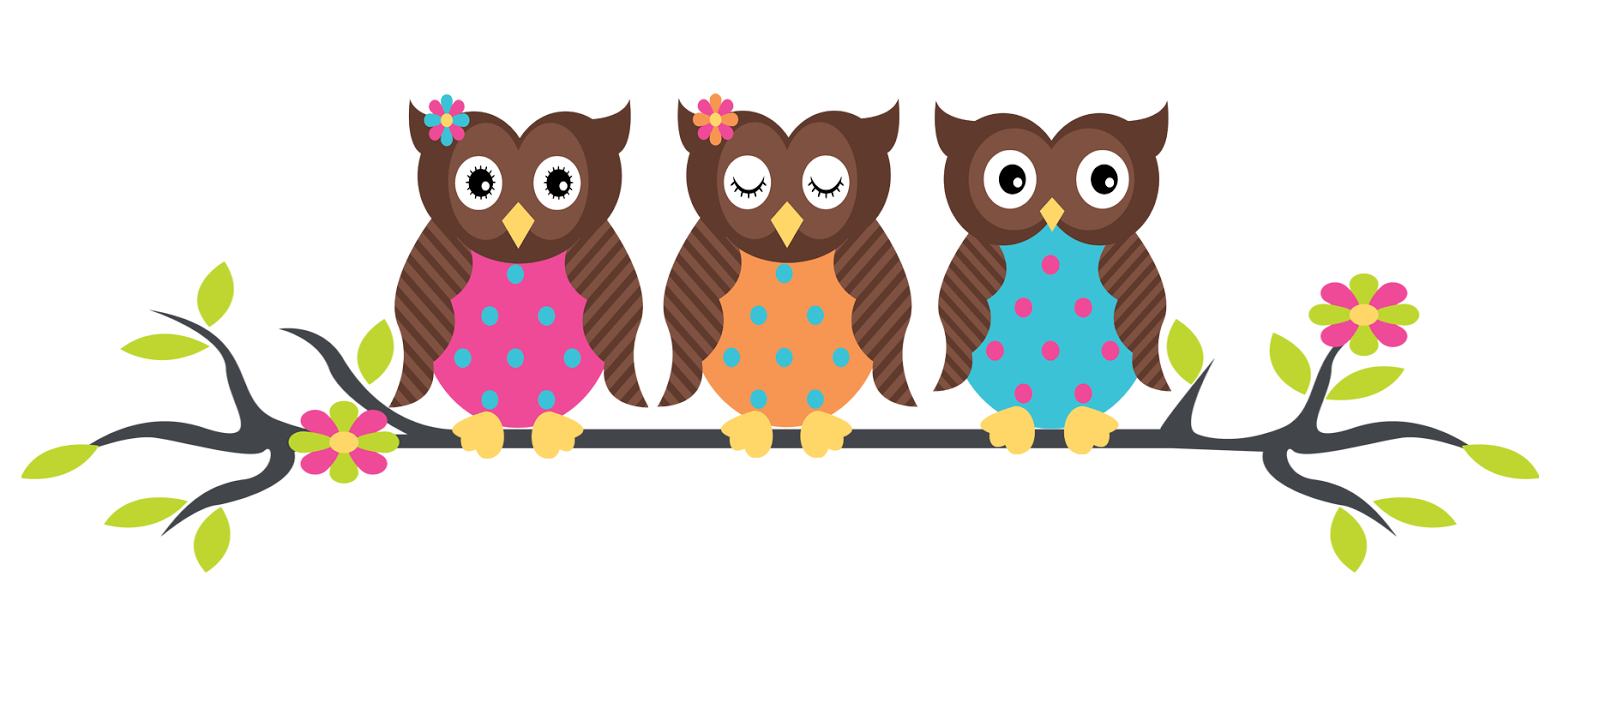 Owl Schools Reading Books Borders Free Wallpaper